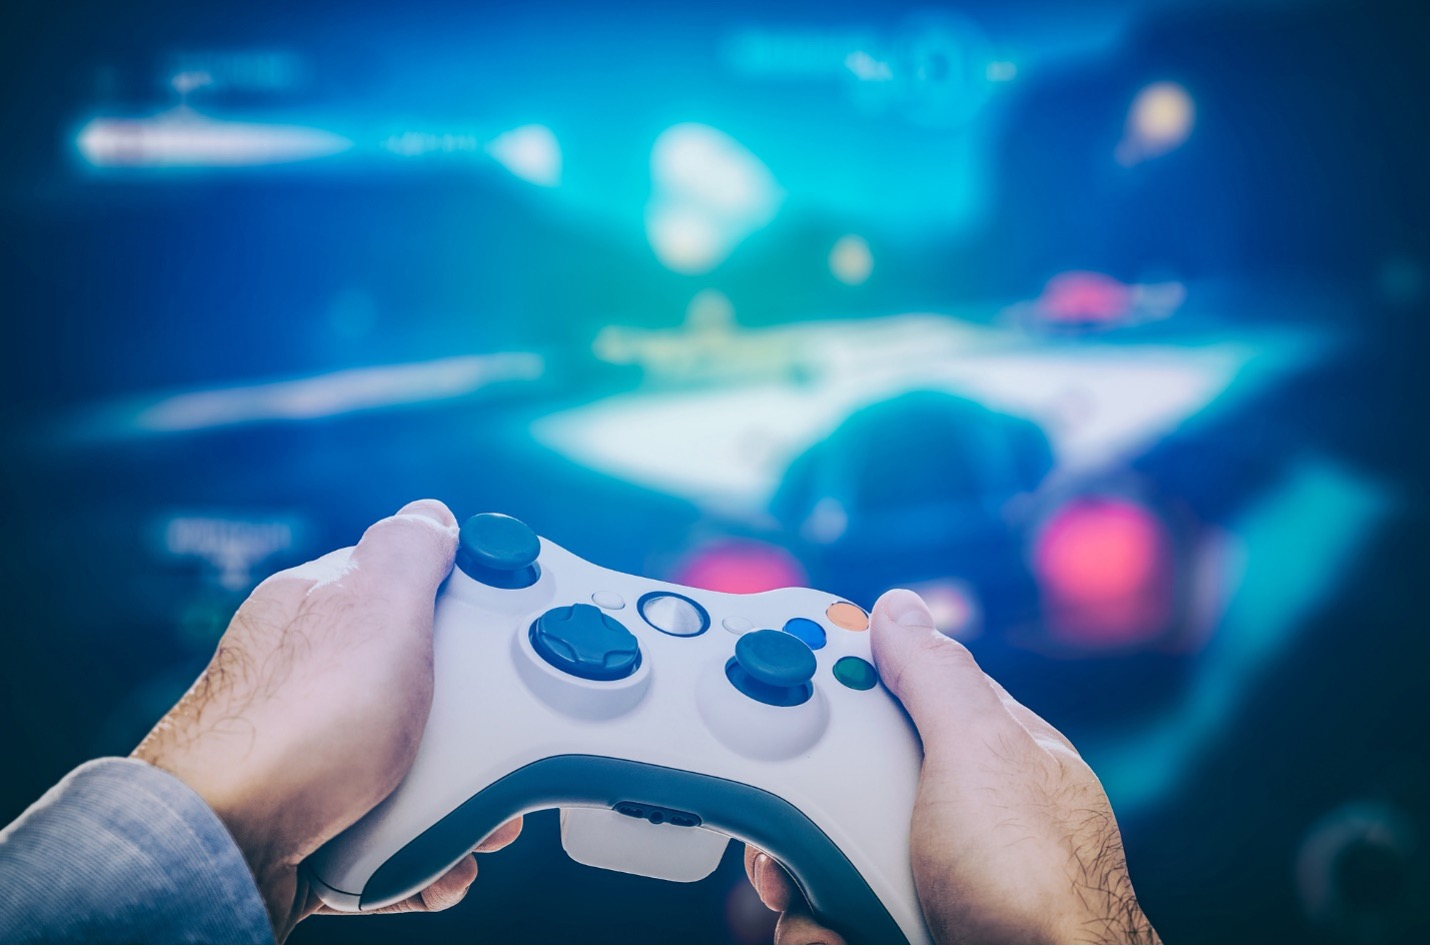 PC vs. Console Gaming: Which Is Better?